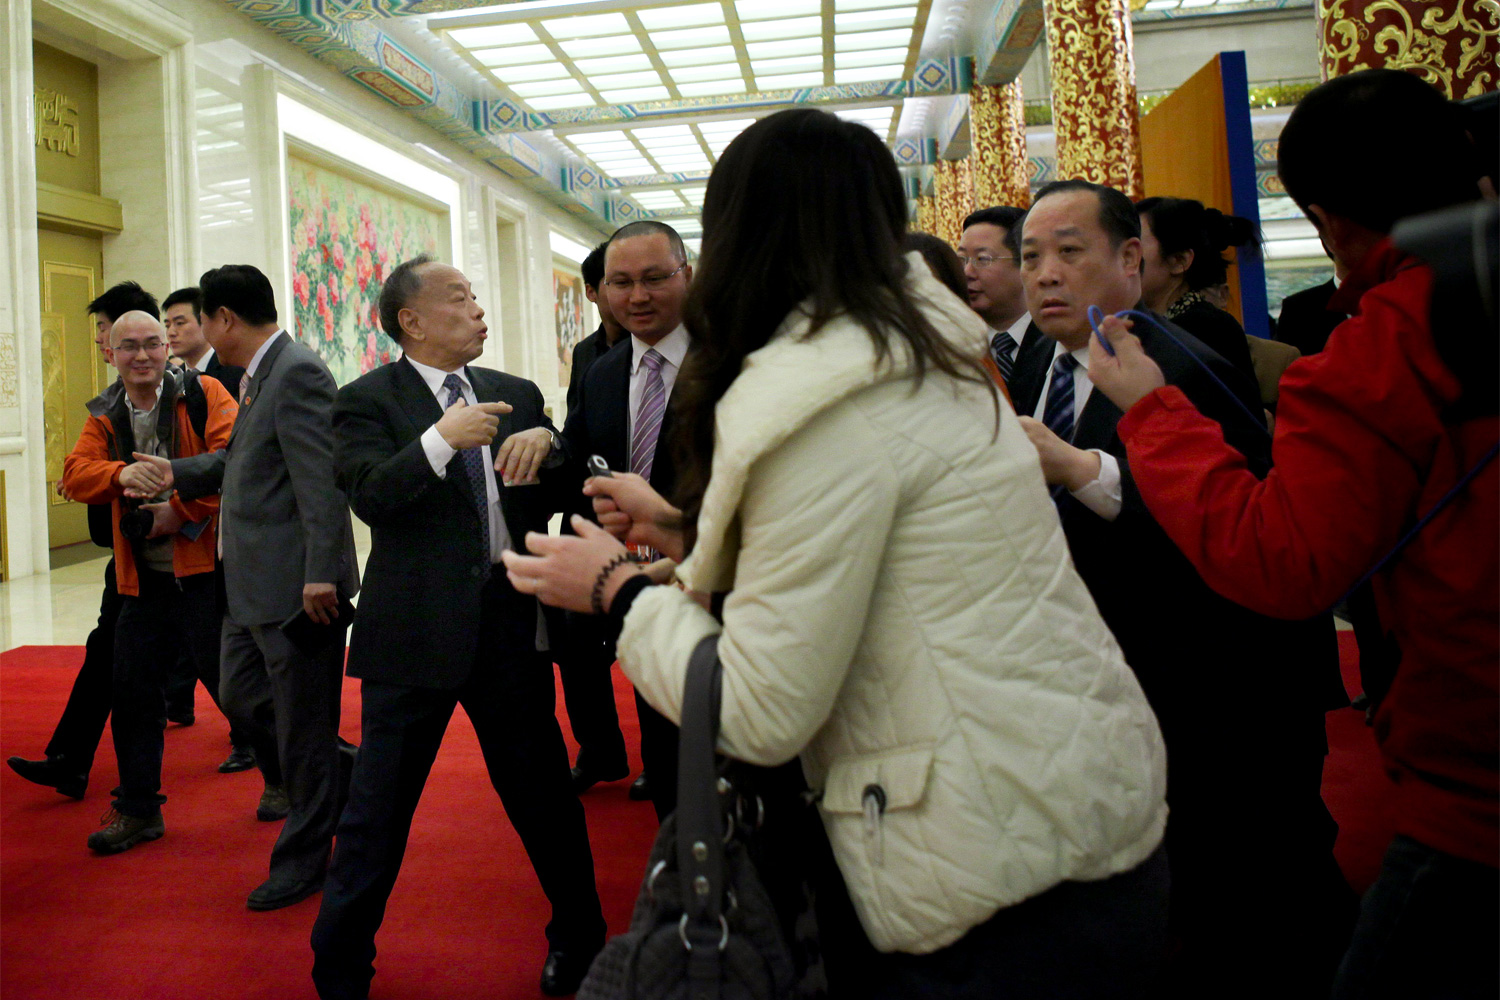 Li Zhaoxing, a spokesperson for the NPC, turns to answer questions from journalists after a press conference, March 4, 2011.